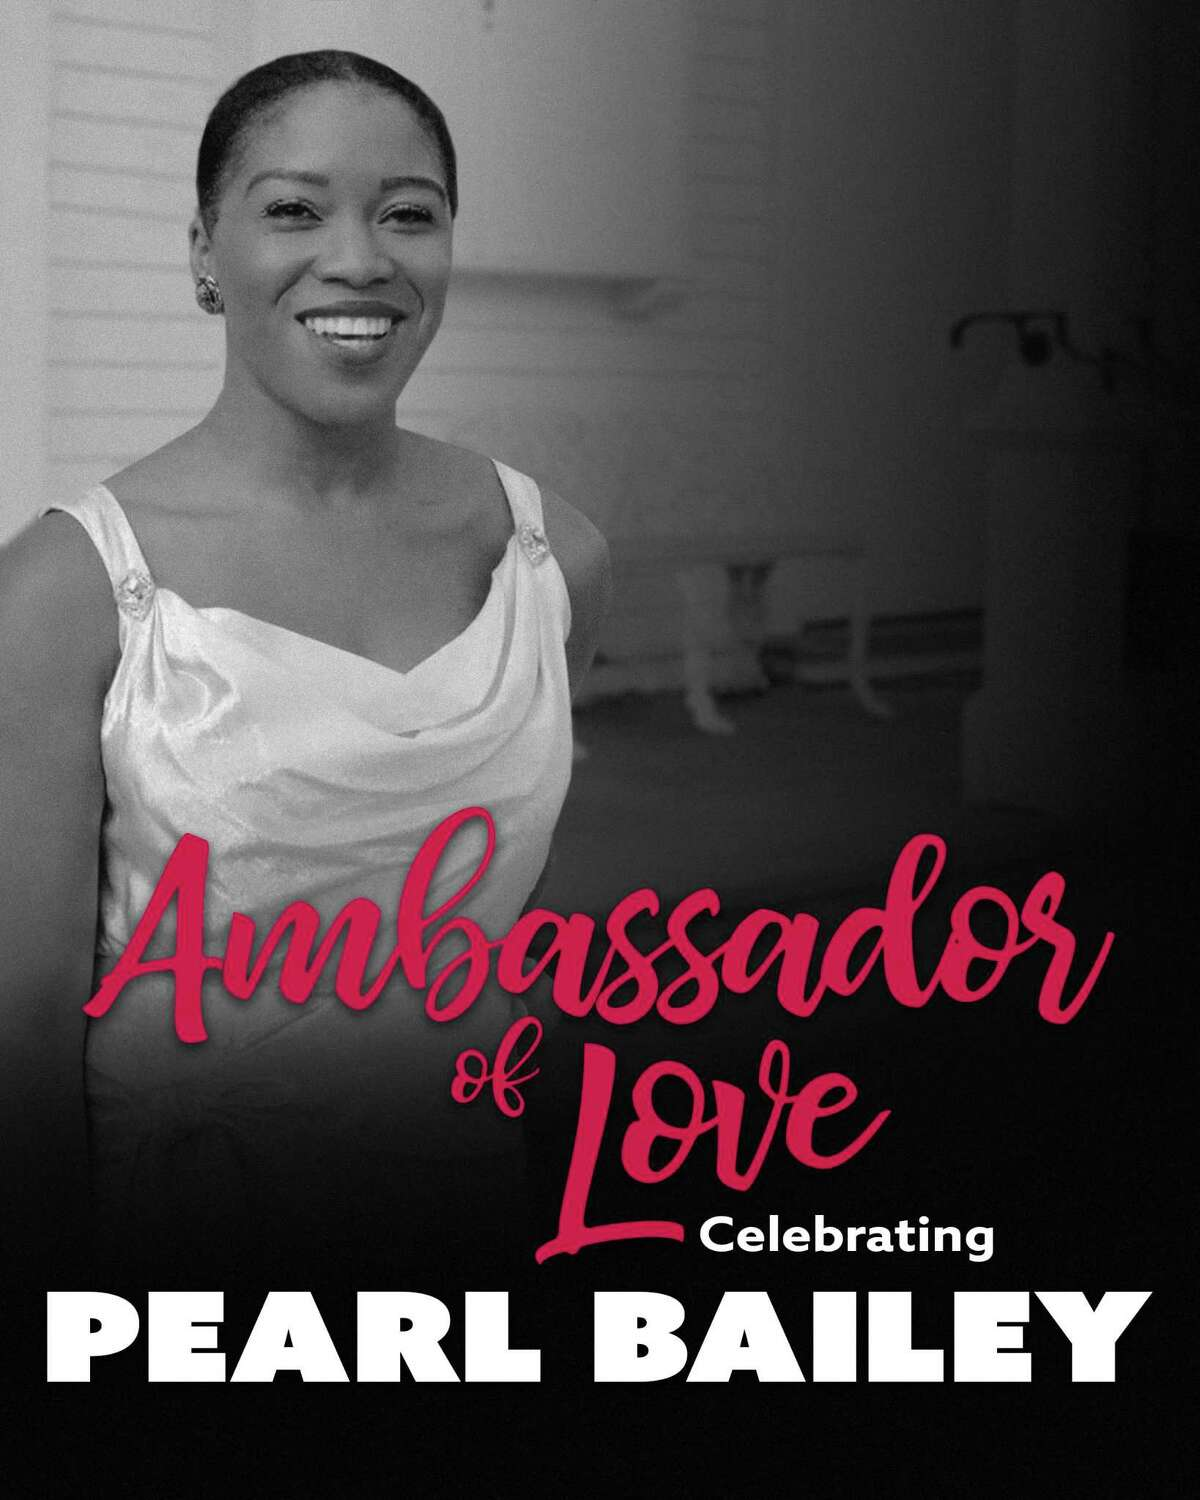 """The iconic Pearl Bailey will be immortalized as """"The Ambassador of Love"""" from June 22 to July 18 as Broadway and Goodspeed favorite Rashidra Scott takes center stage."""